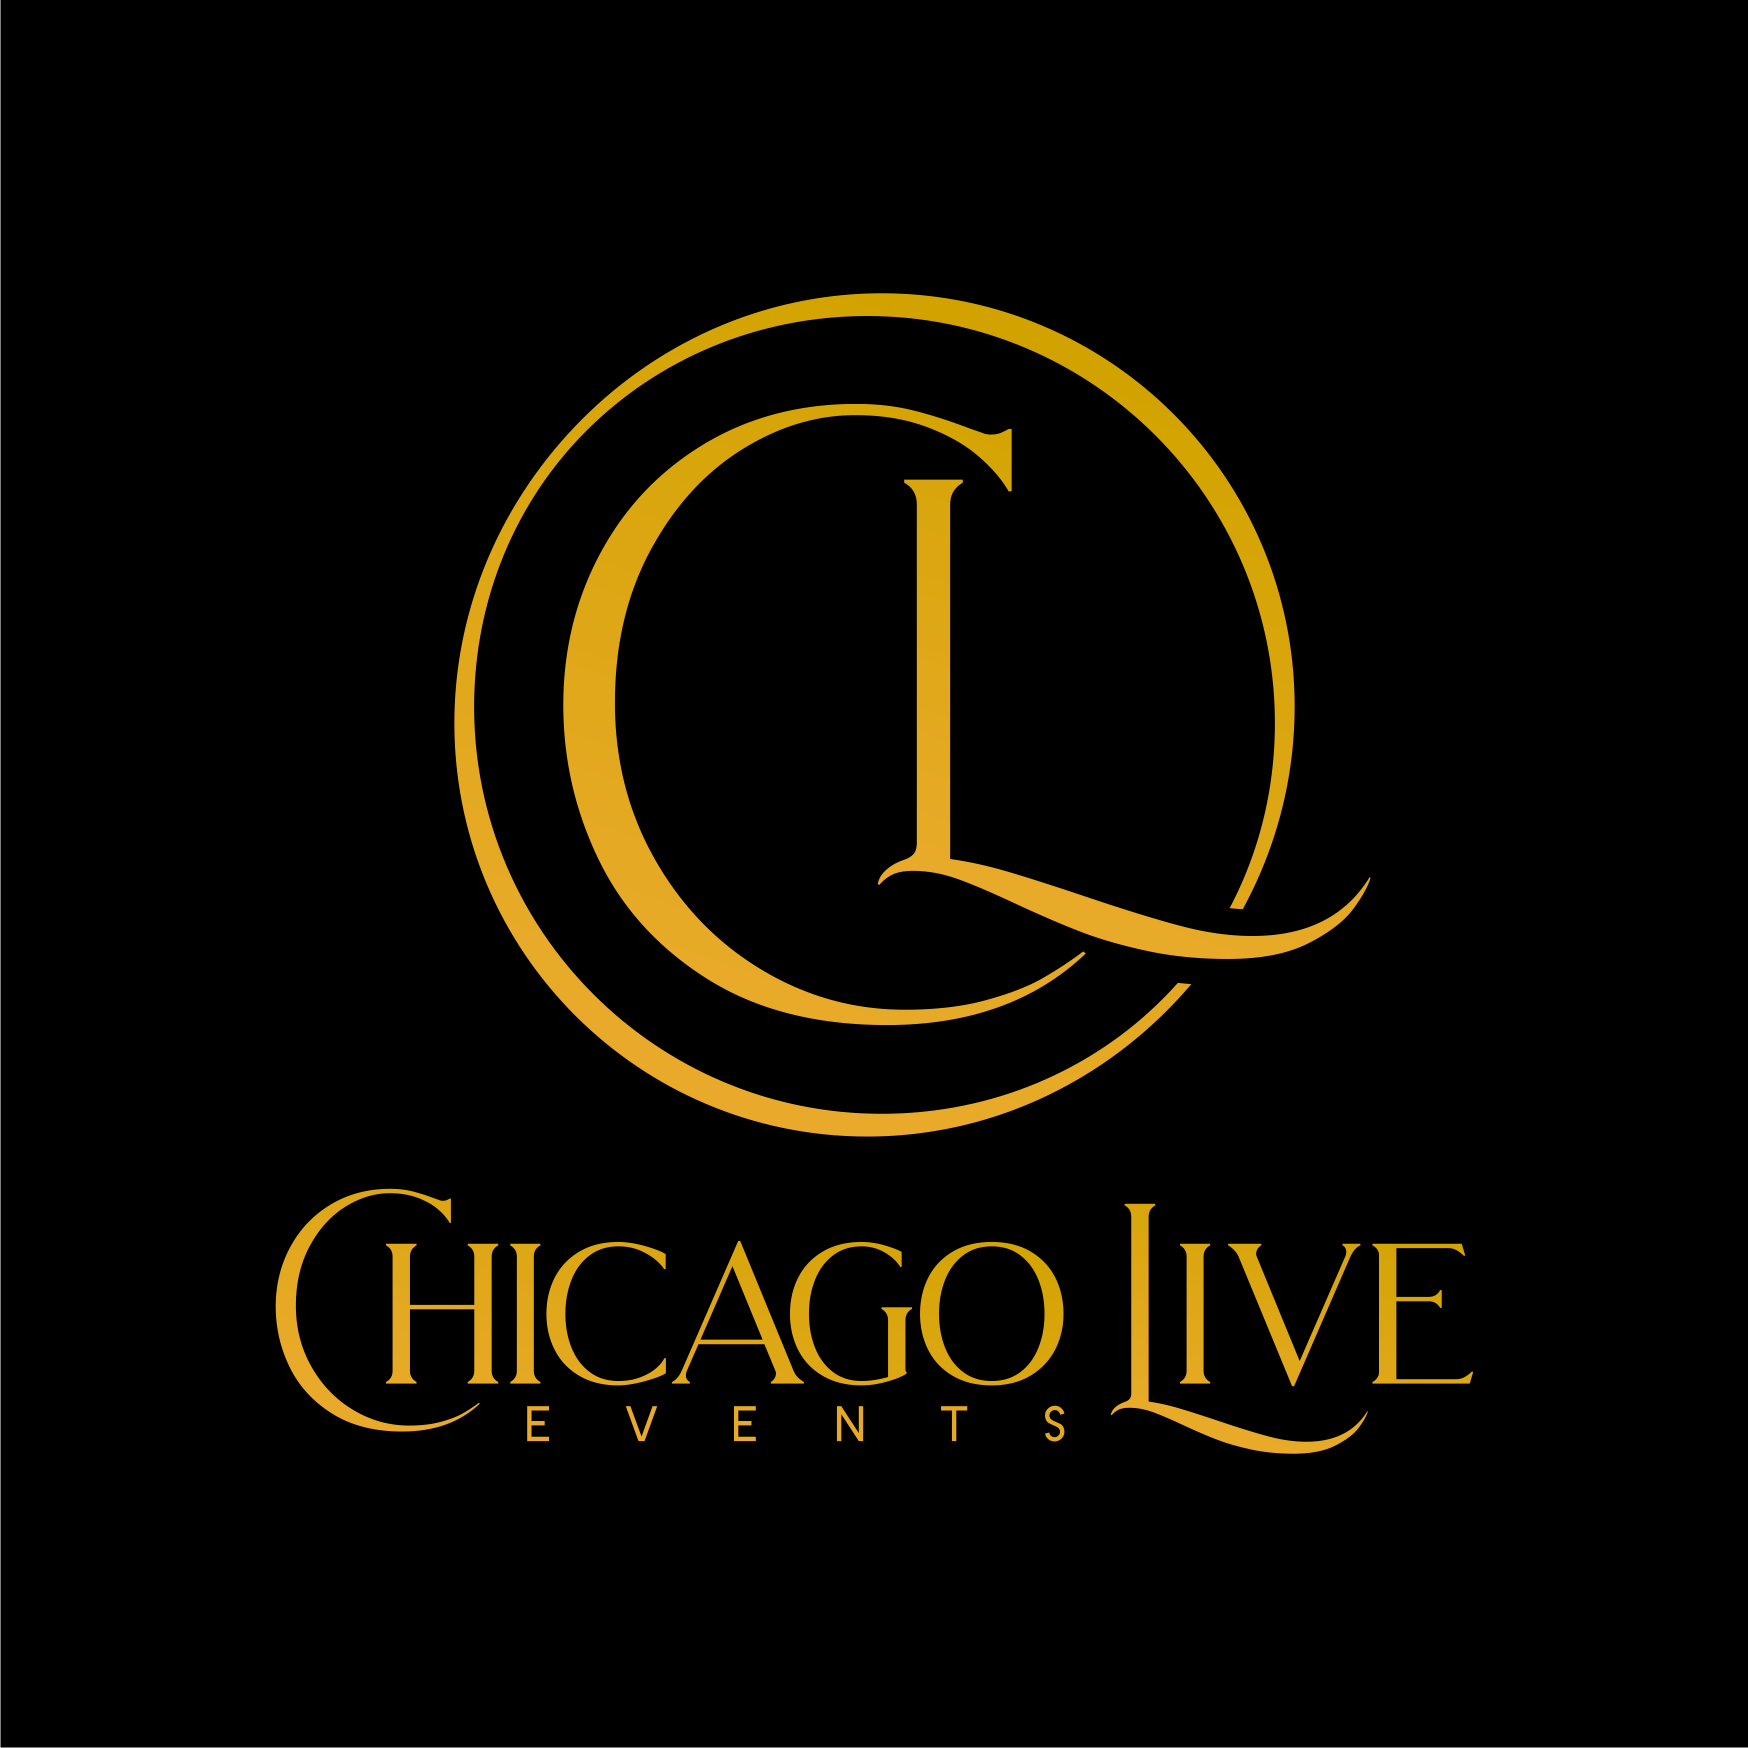 Chicago Live Events